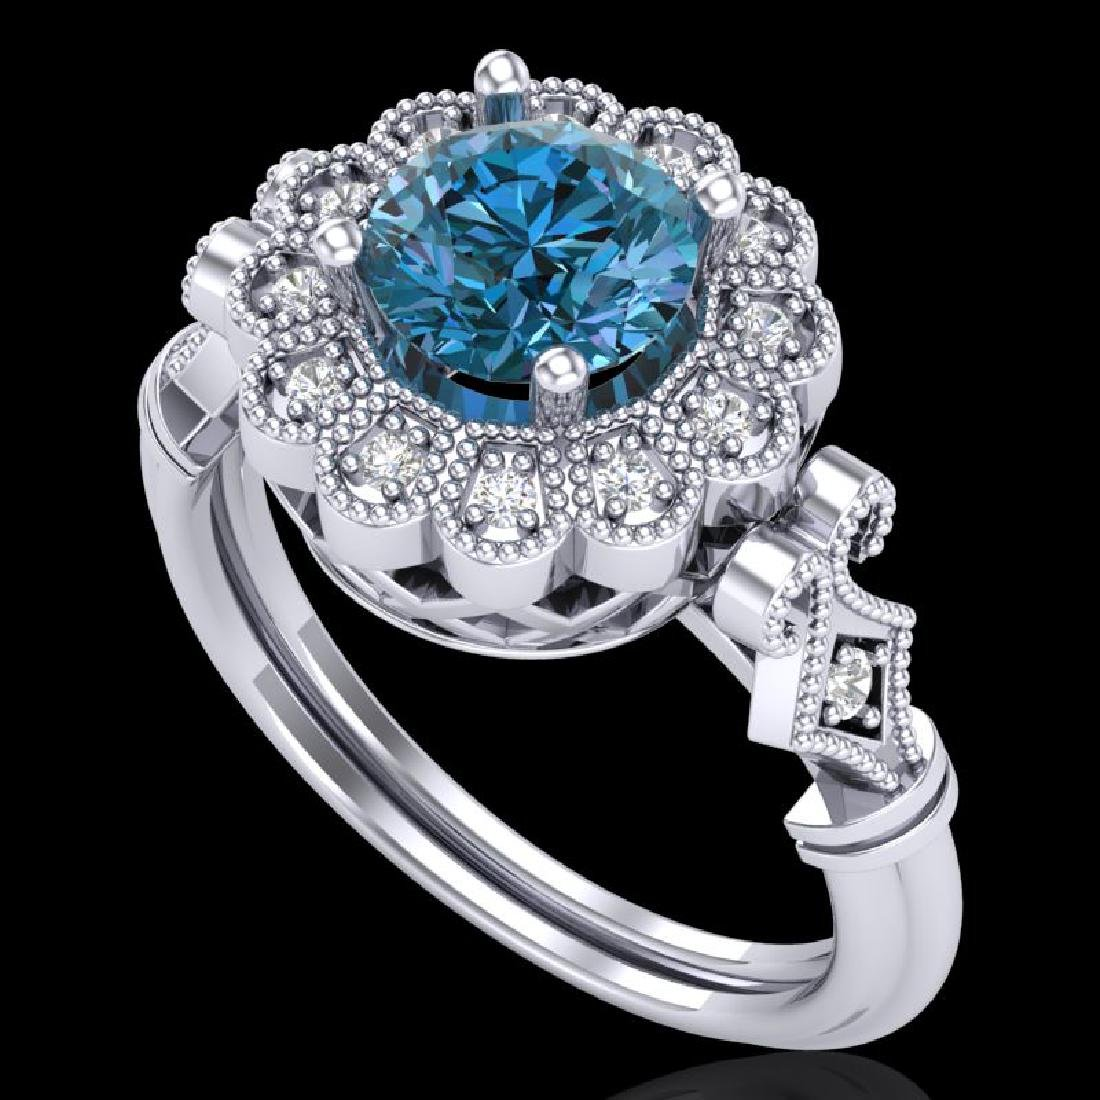 1.2 CTW Intense Blue Diamond Solitaire Engagement Art